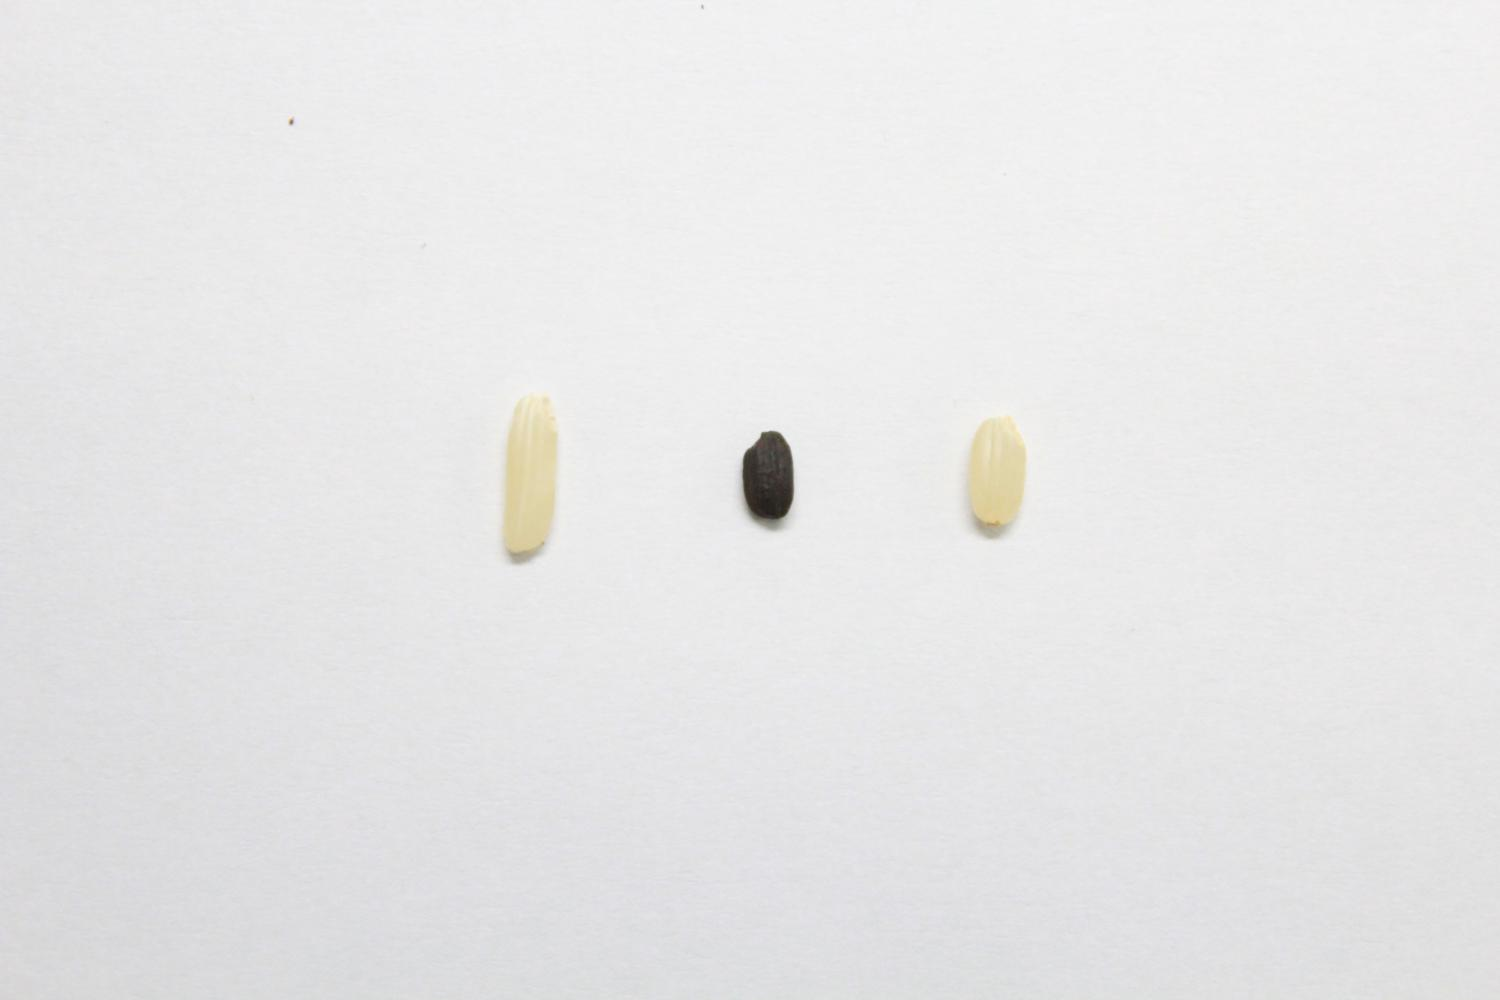 Every grain of rice: Ancient rice DNA data provides new view of domestication history